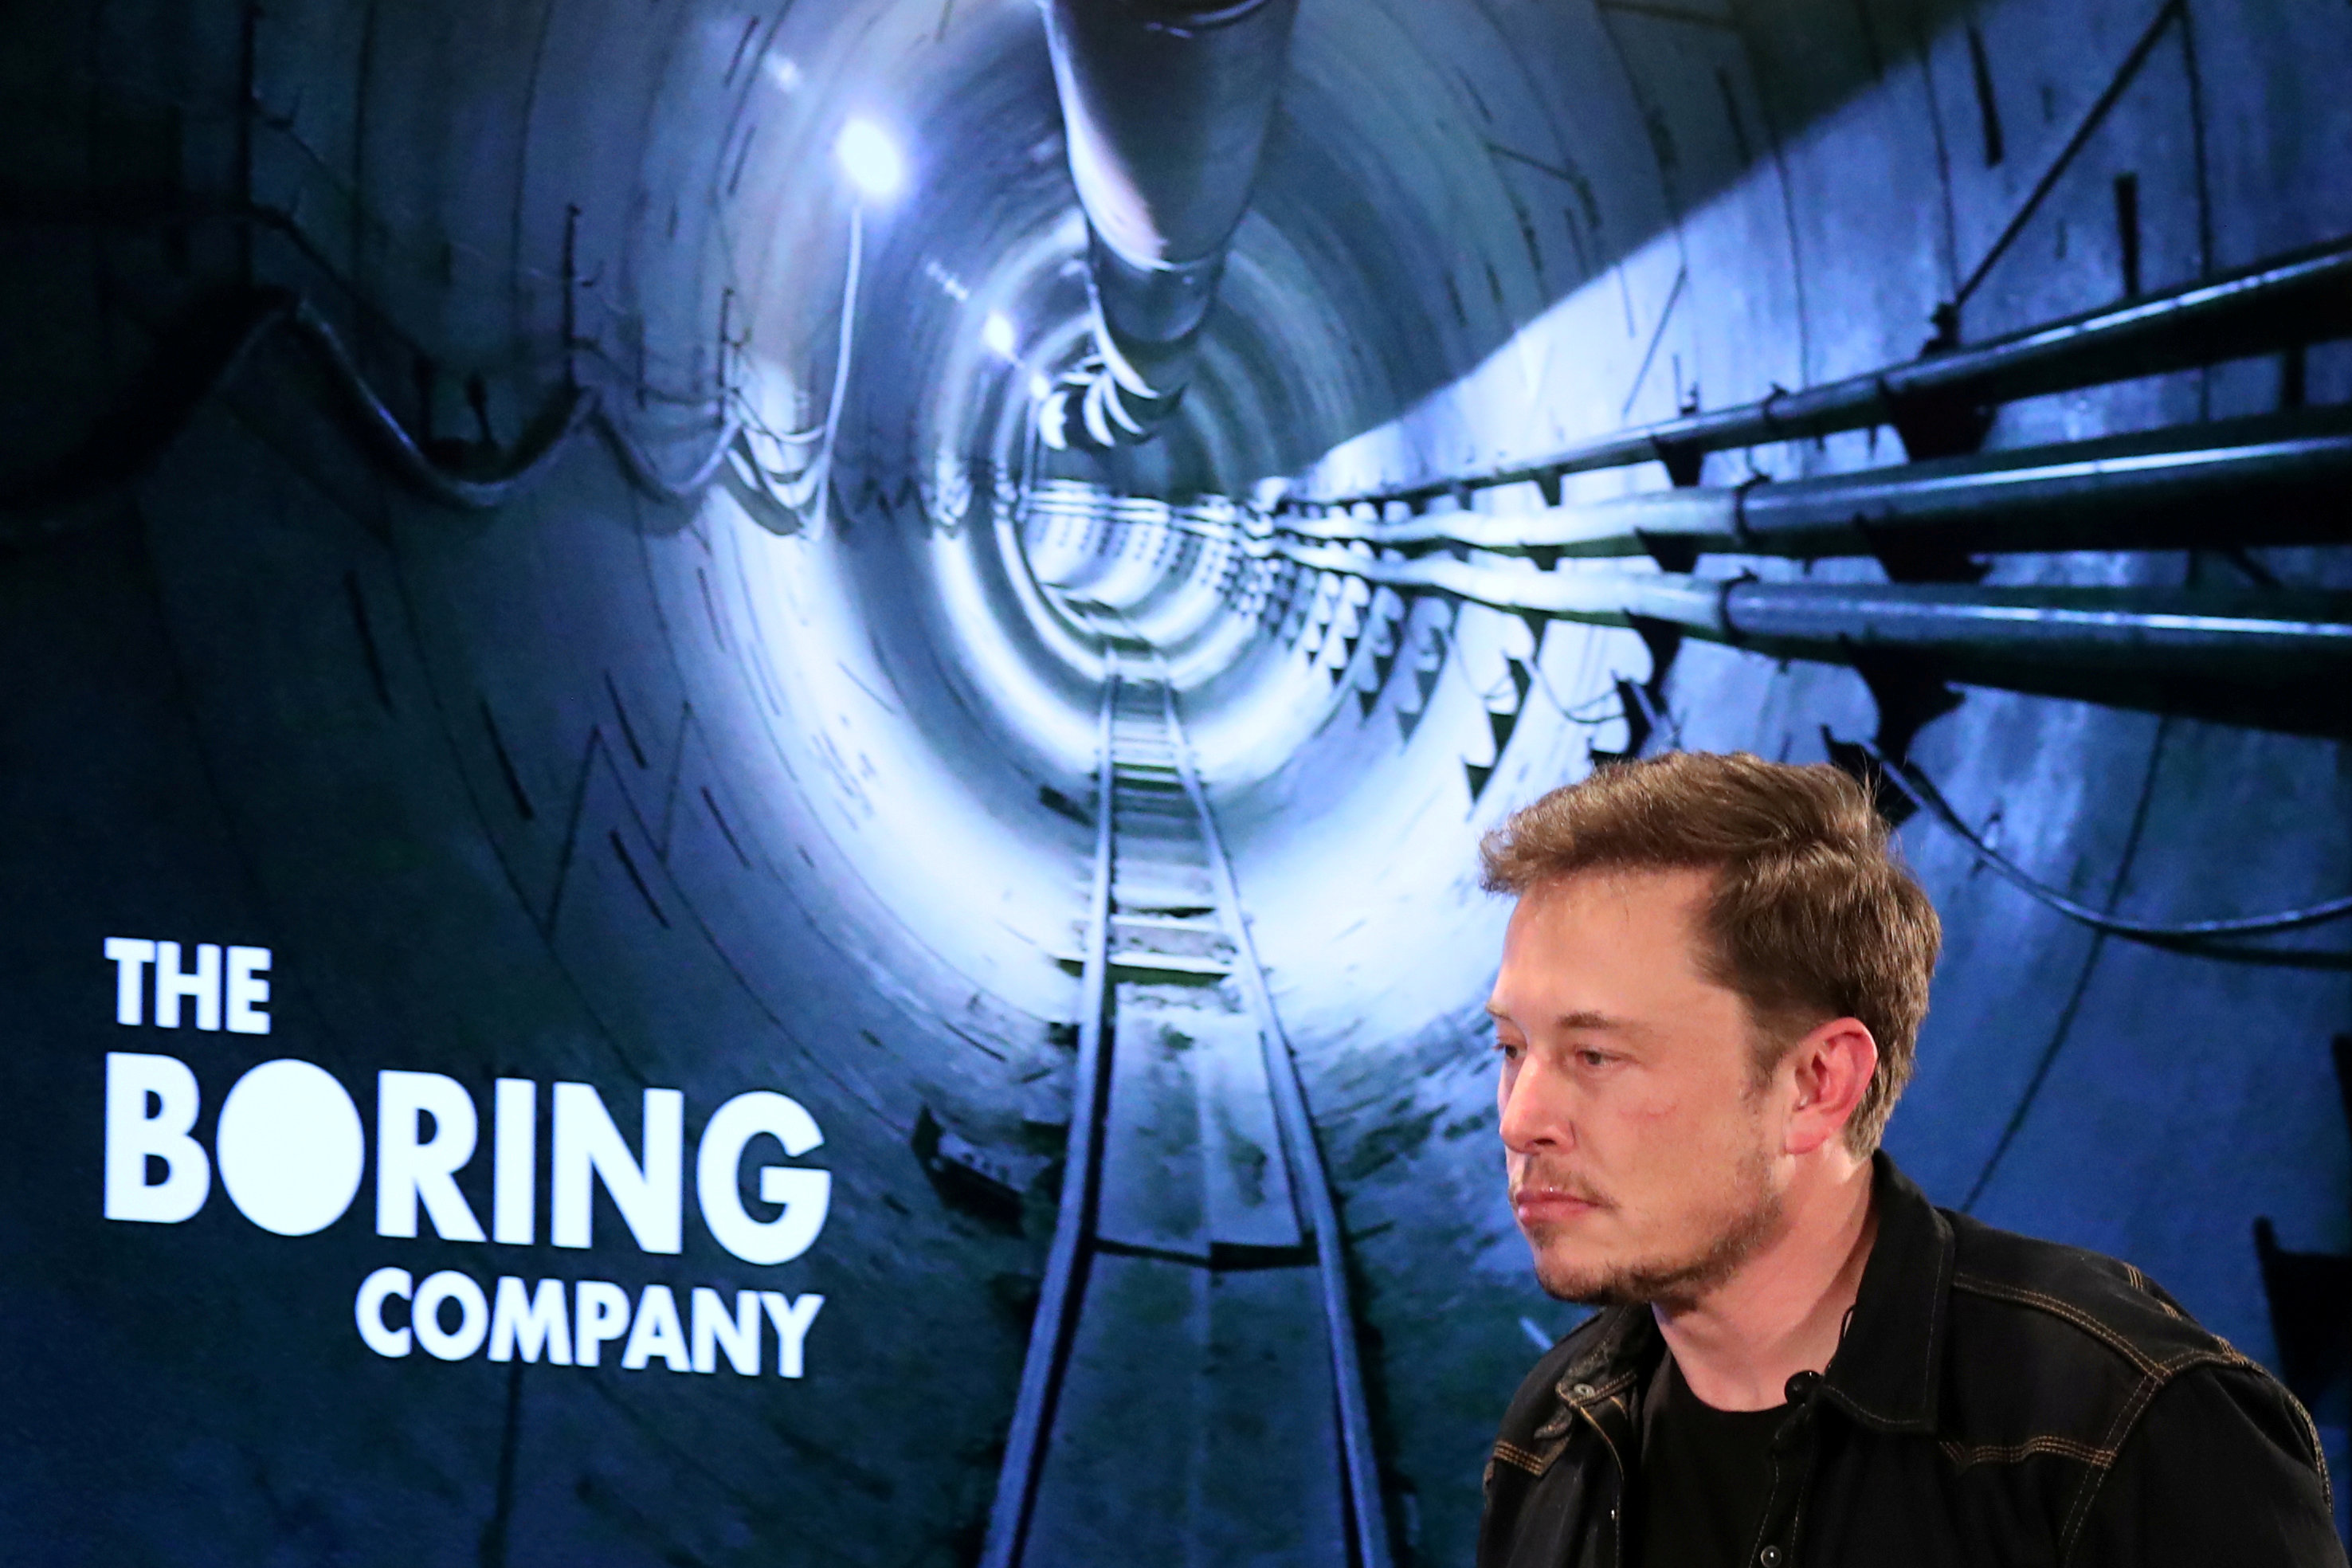 photo image Chicago chooses Elon Musk's Boring Company to build high-speed airport link